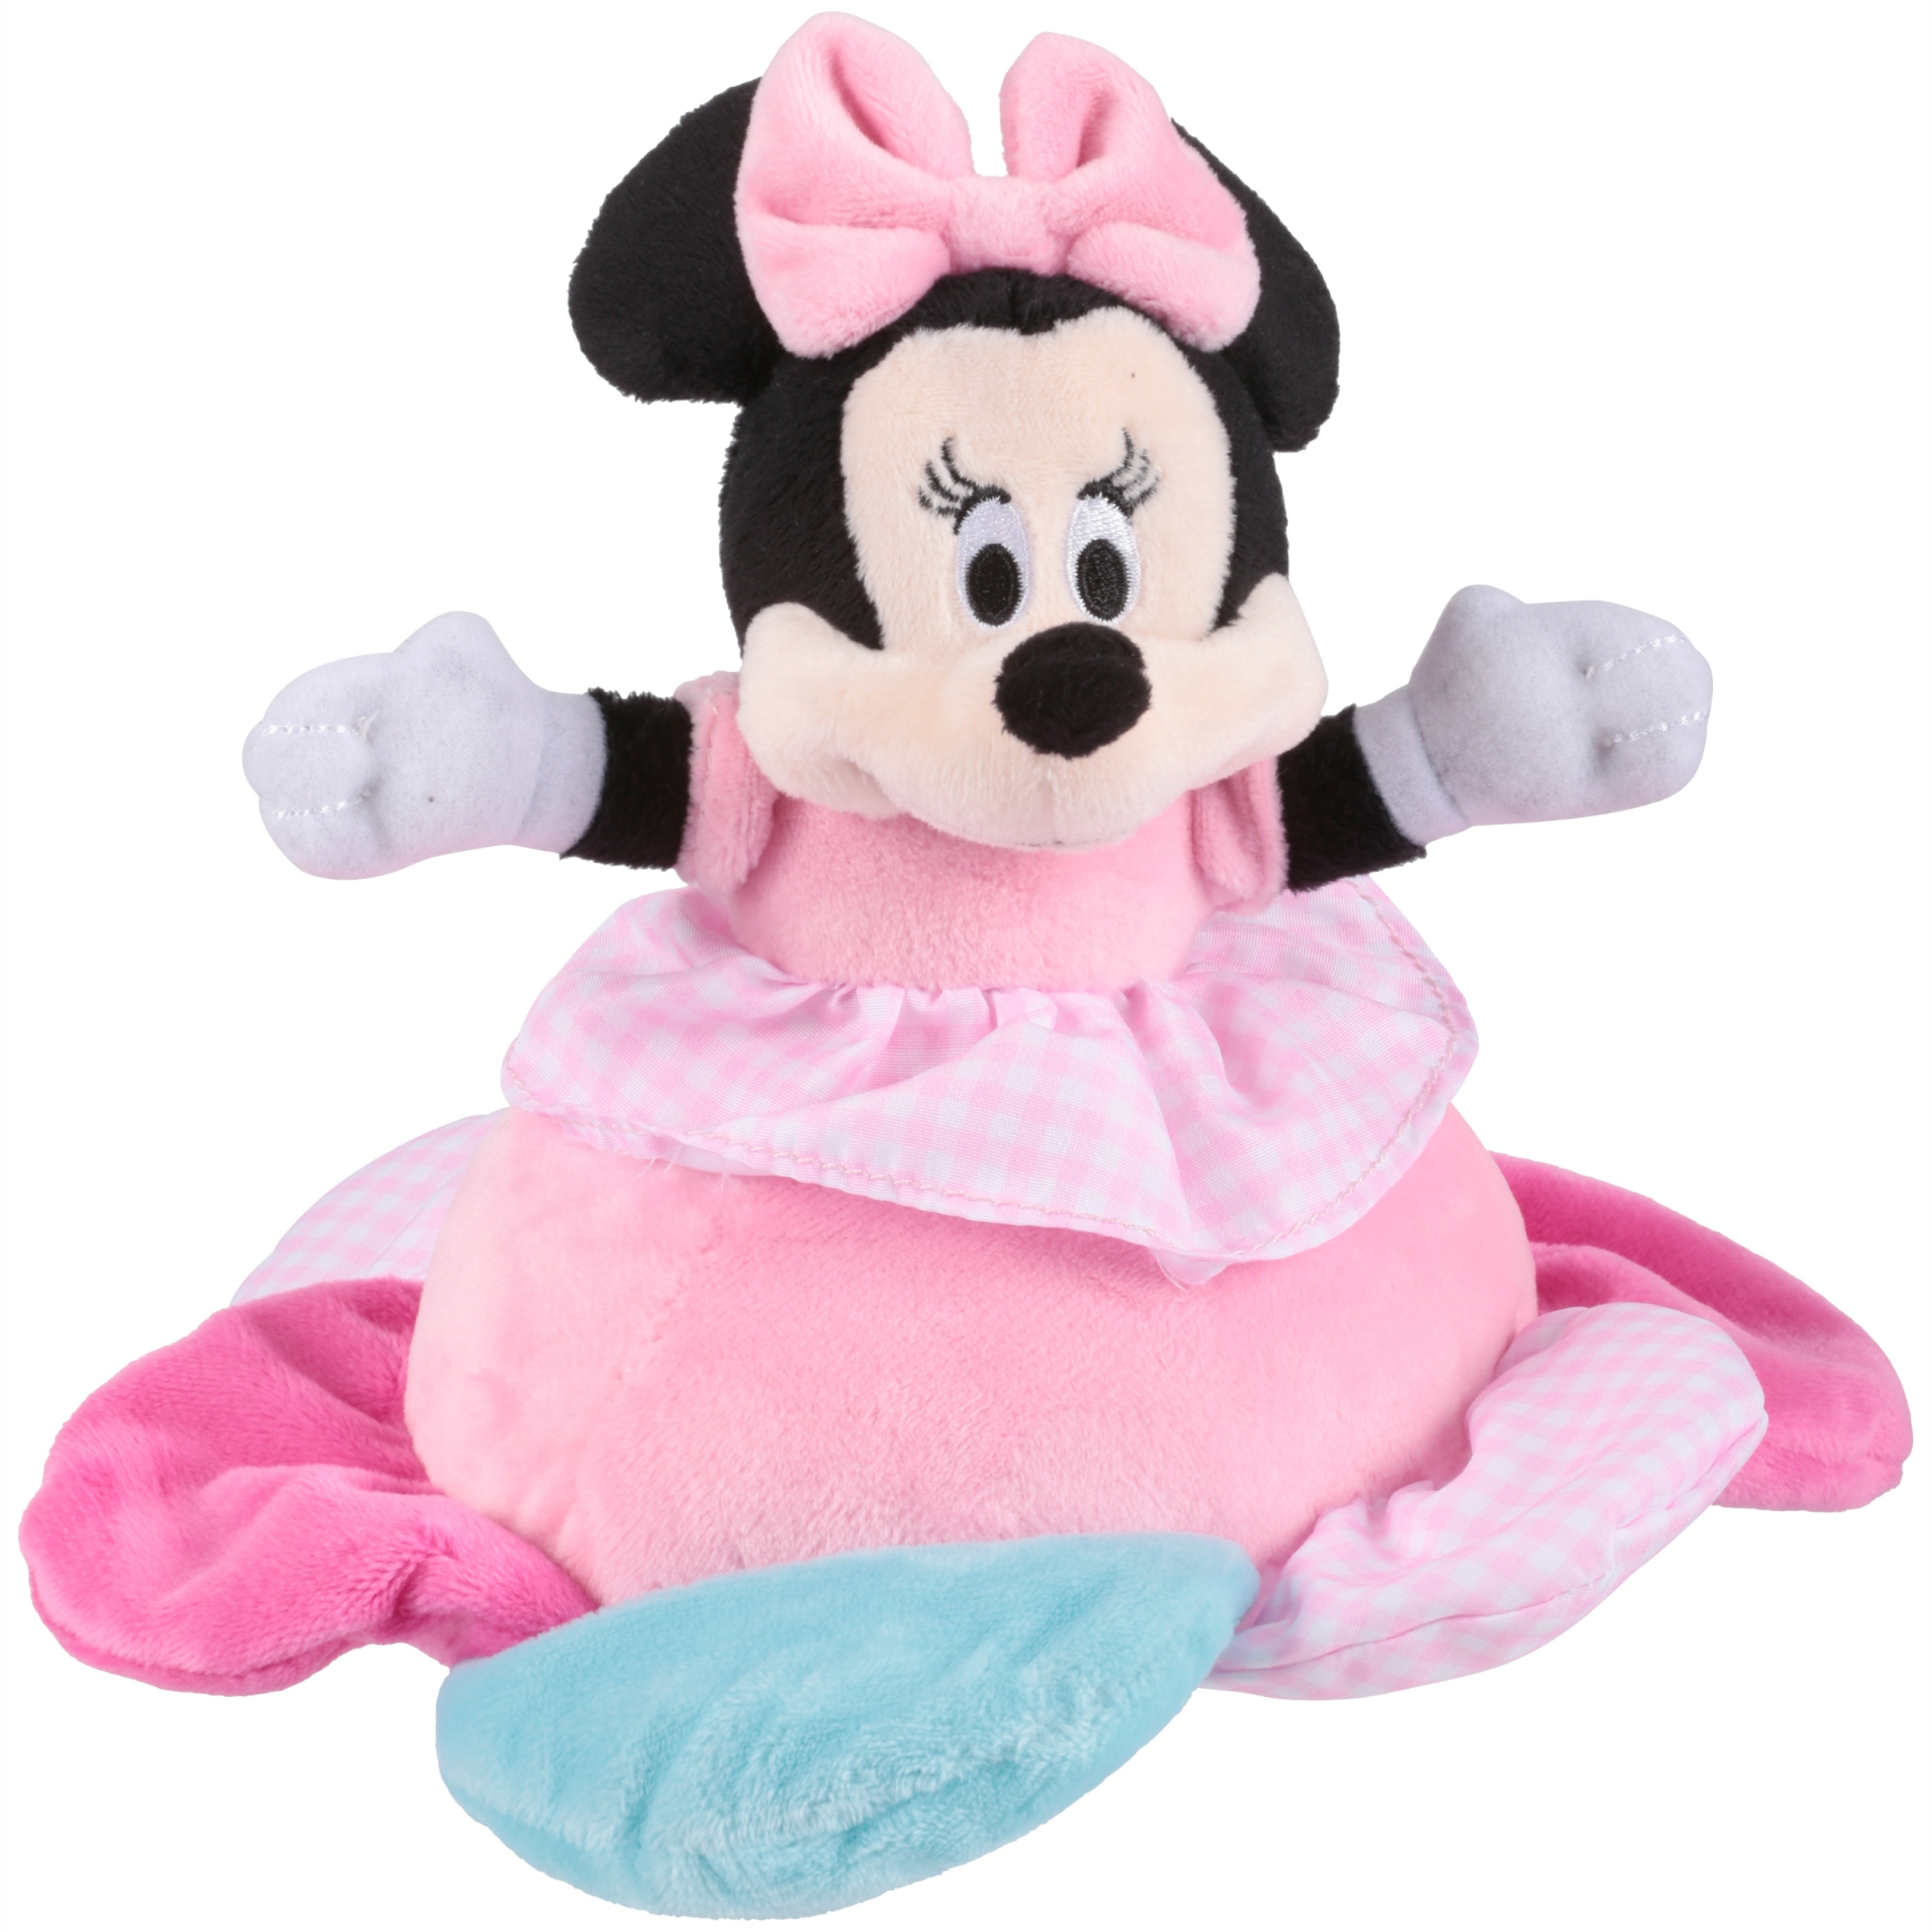 Disney Baby Minnie Mouse Stuffed Toy by Kids Preferred